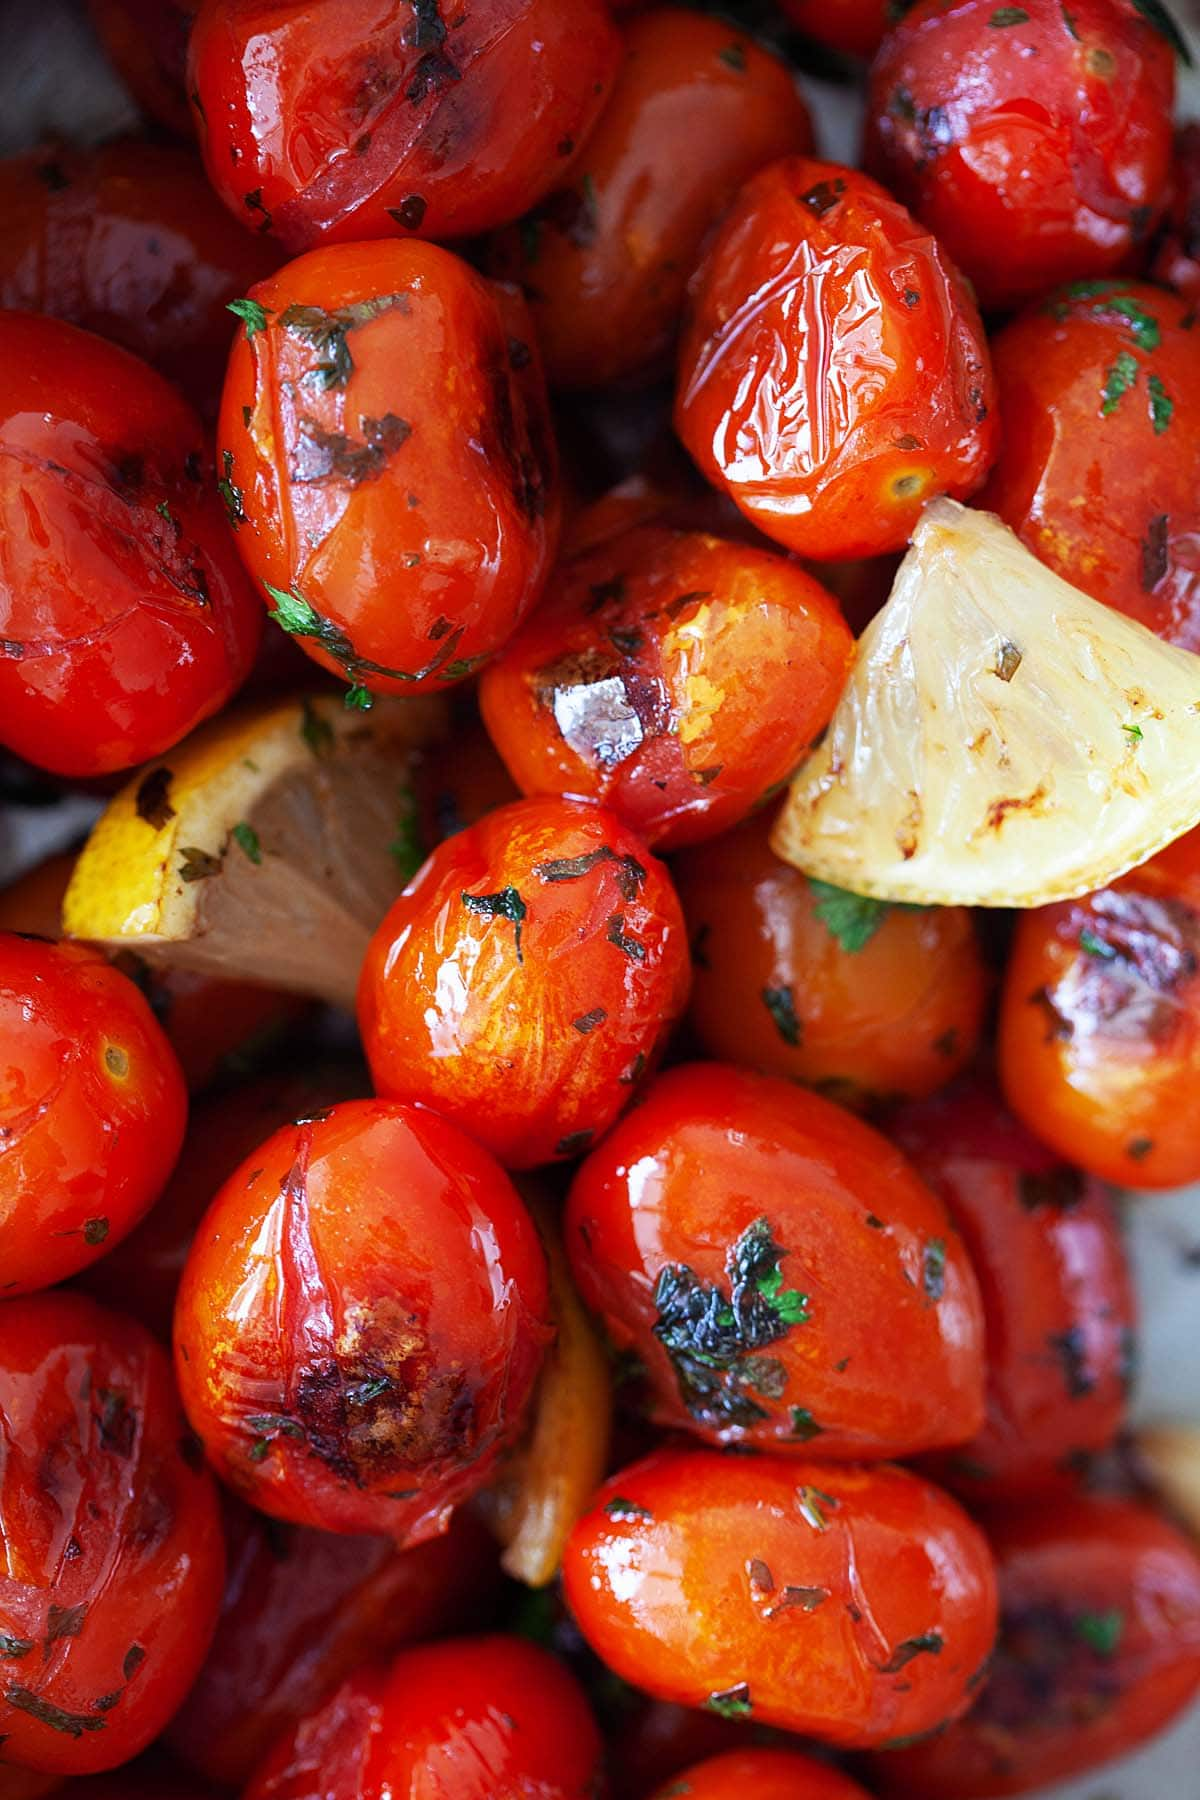 Grilled tomatoes recipe with cherry tomatoes.